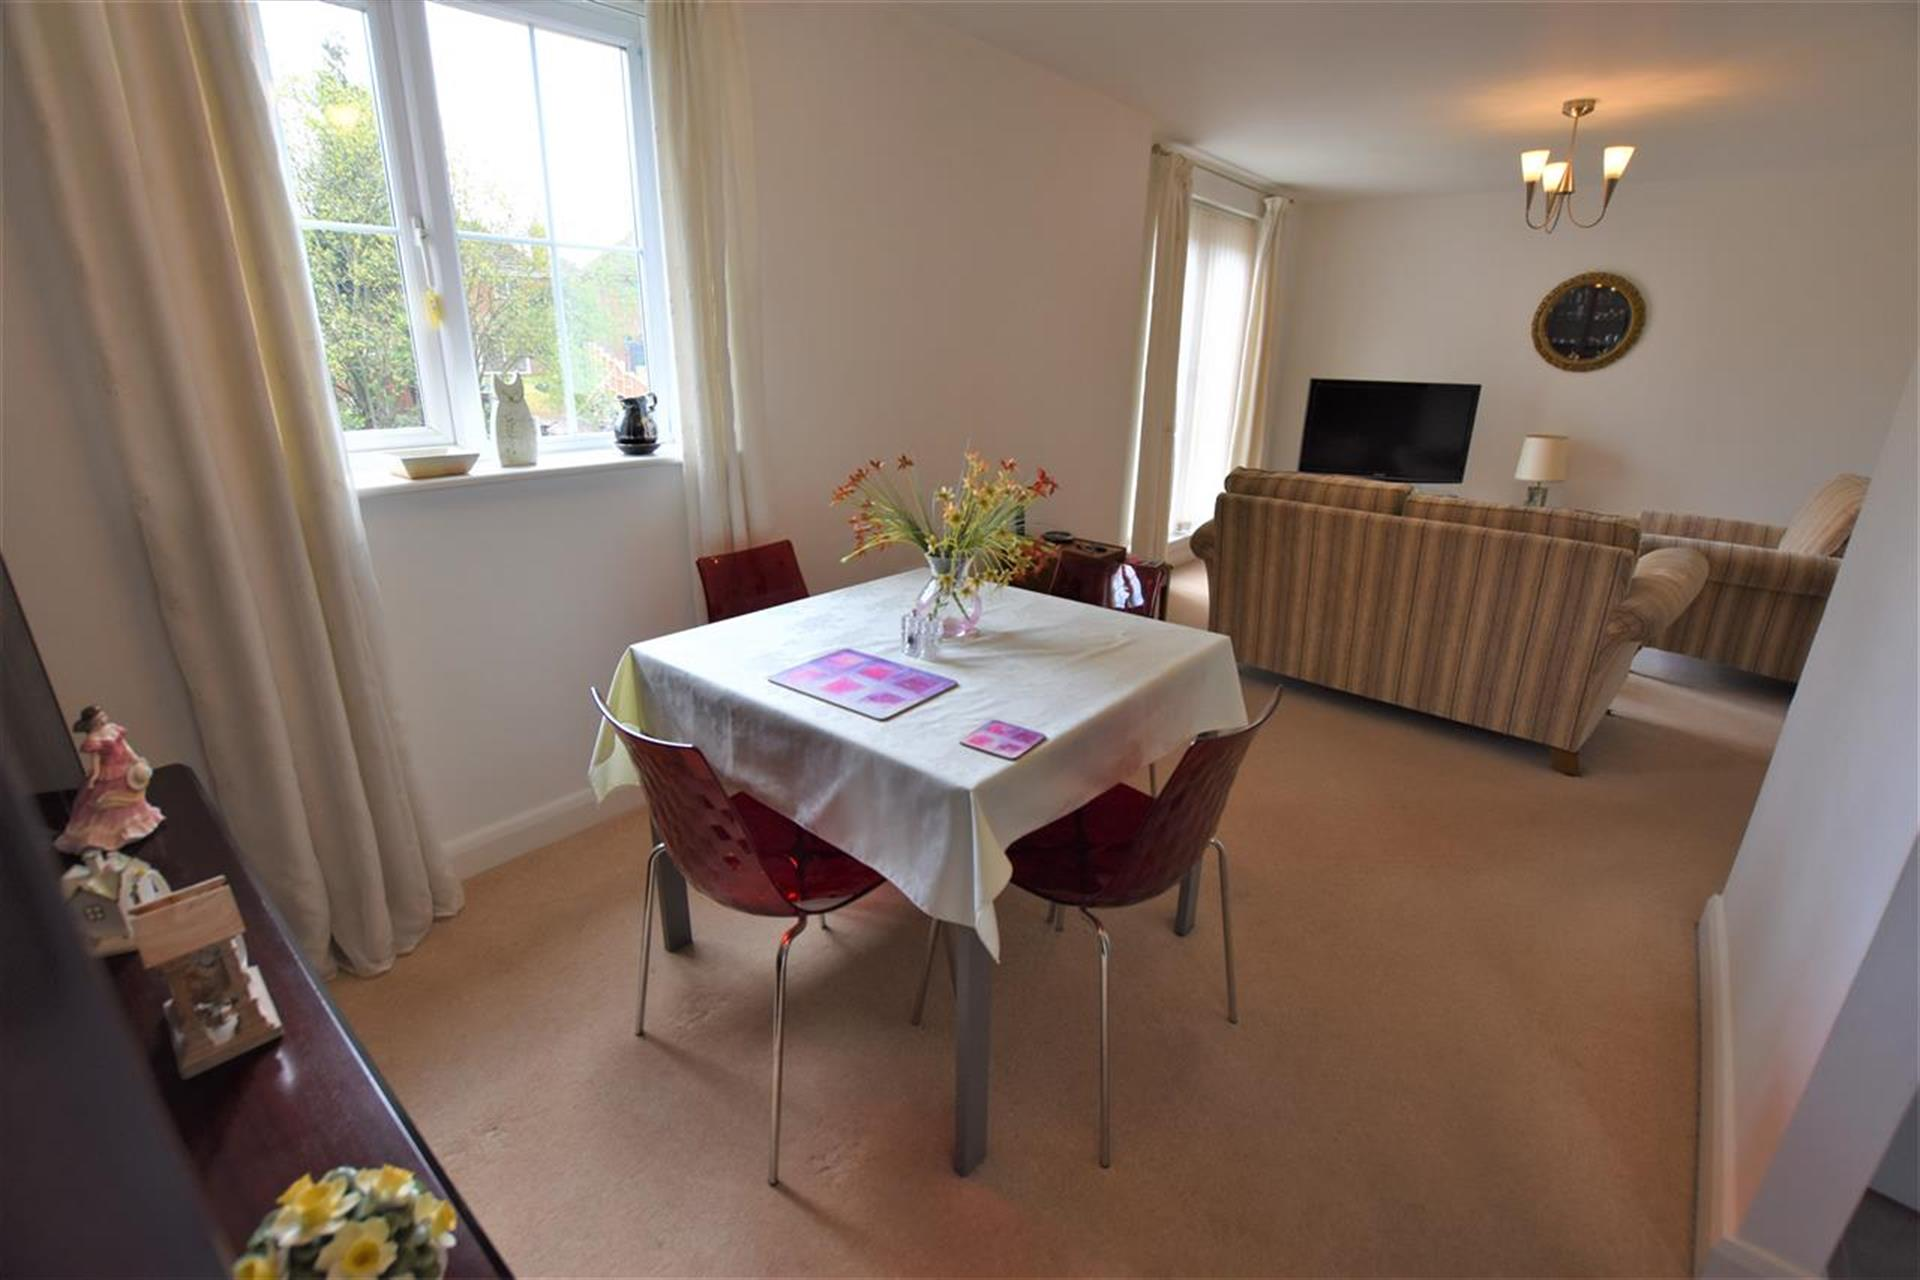 2 Bedroom Apartment Flat / Apartment For Sale - Dining Room